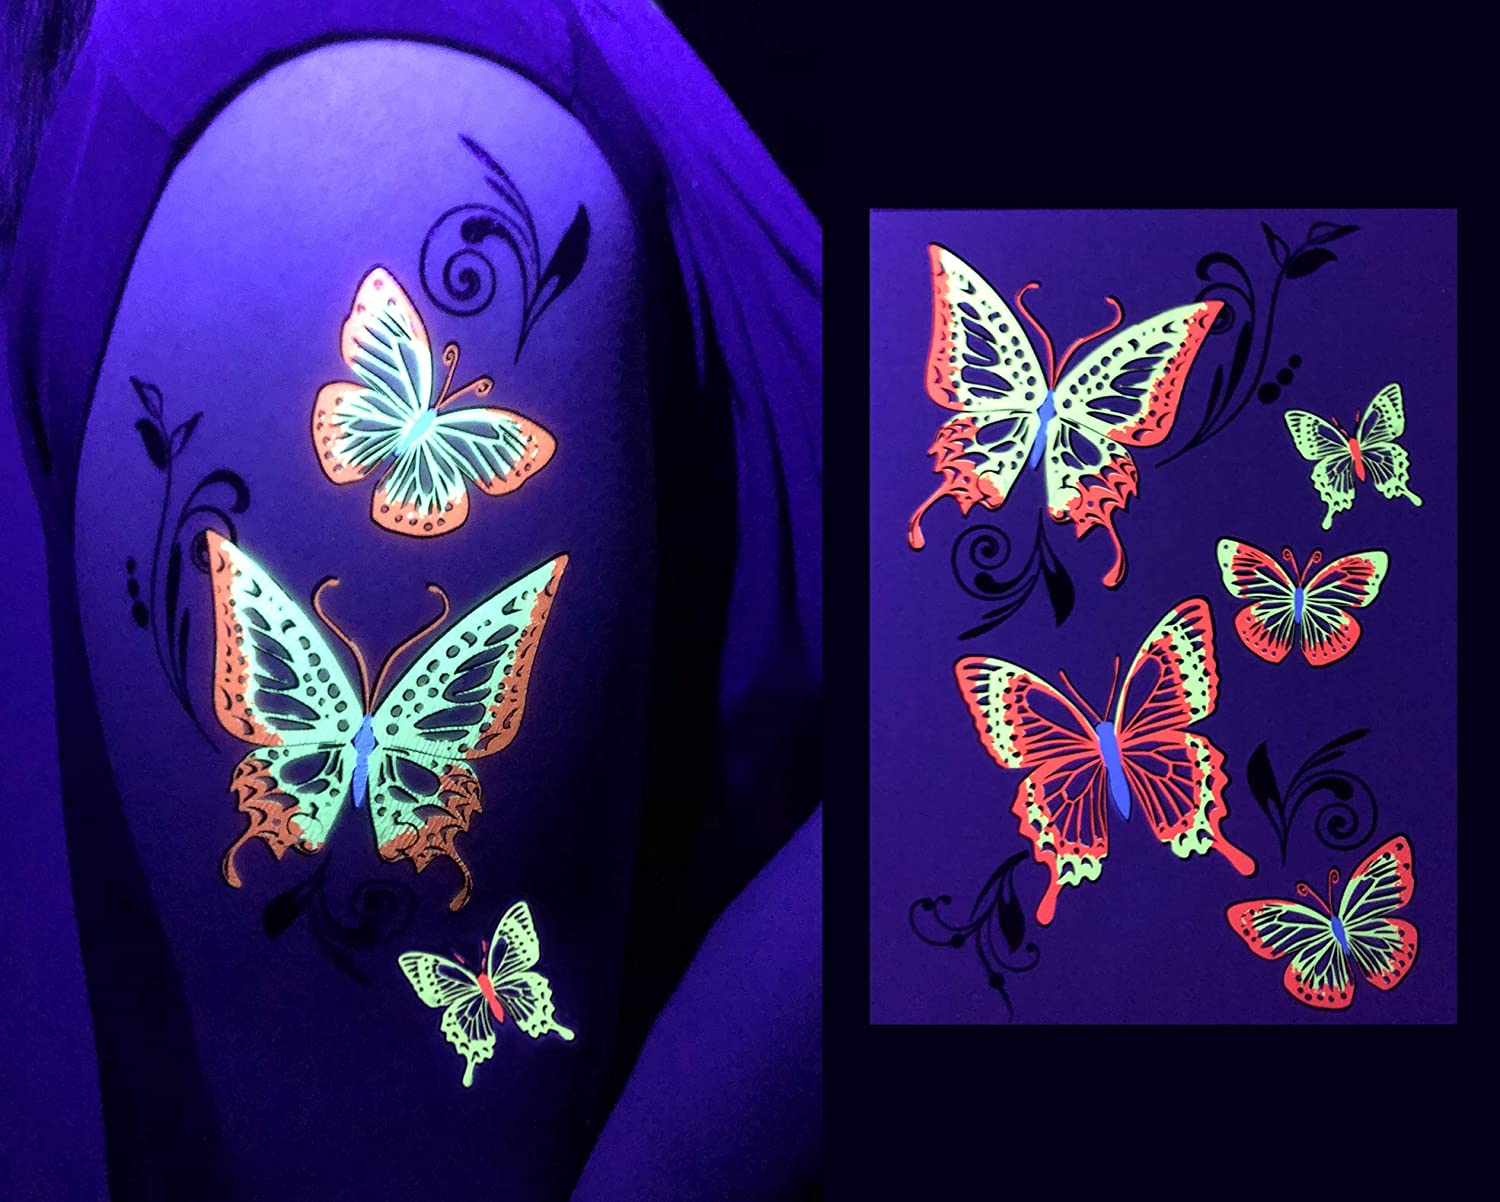 Butterflies//Skulls-Neon Accessories Flash Toy Game Tattoo Stickers Favor Makeup Dark Nightclub Electric Dance Music Festival Concert EDM d/'IRIS studio dIRIS studio LED Glow Party Supplies Tattoos Value Pack